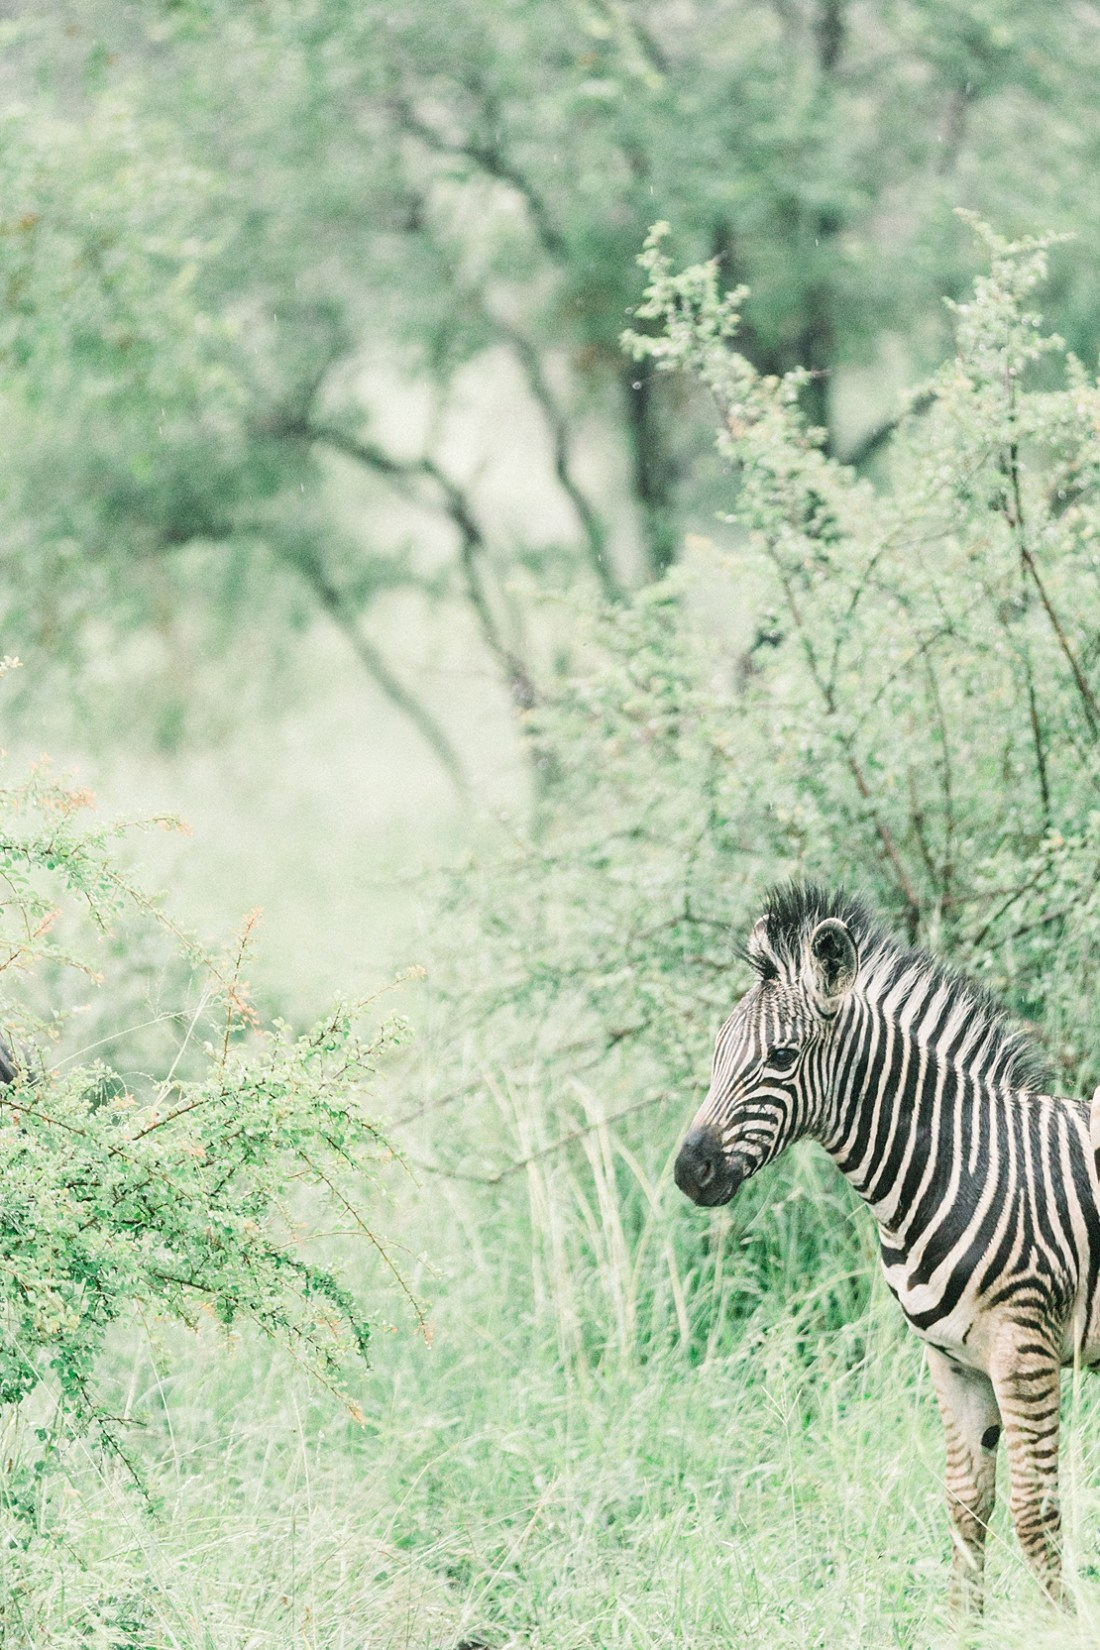 zebras at Kruger national park